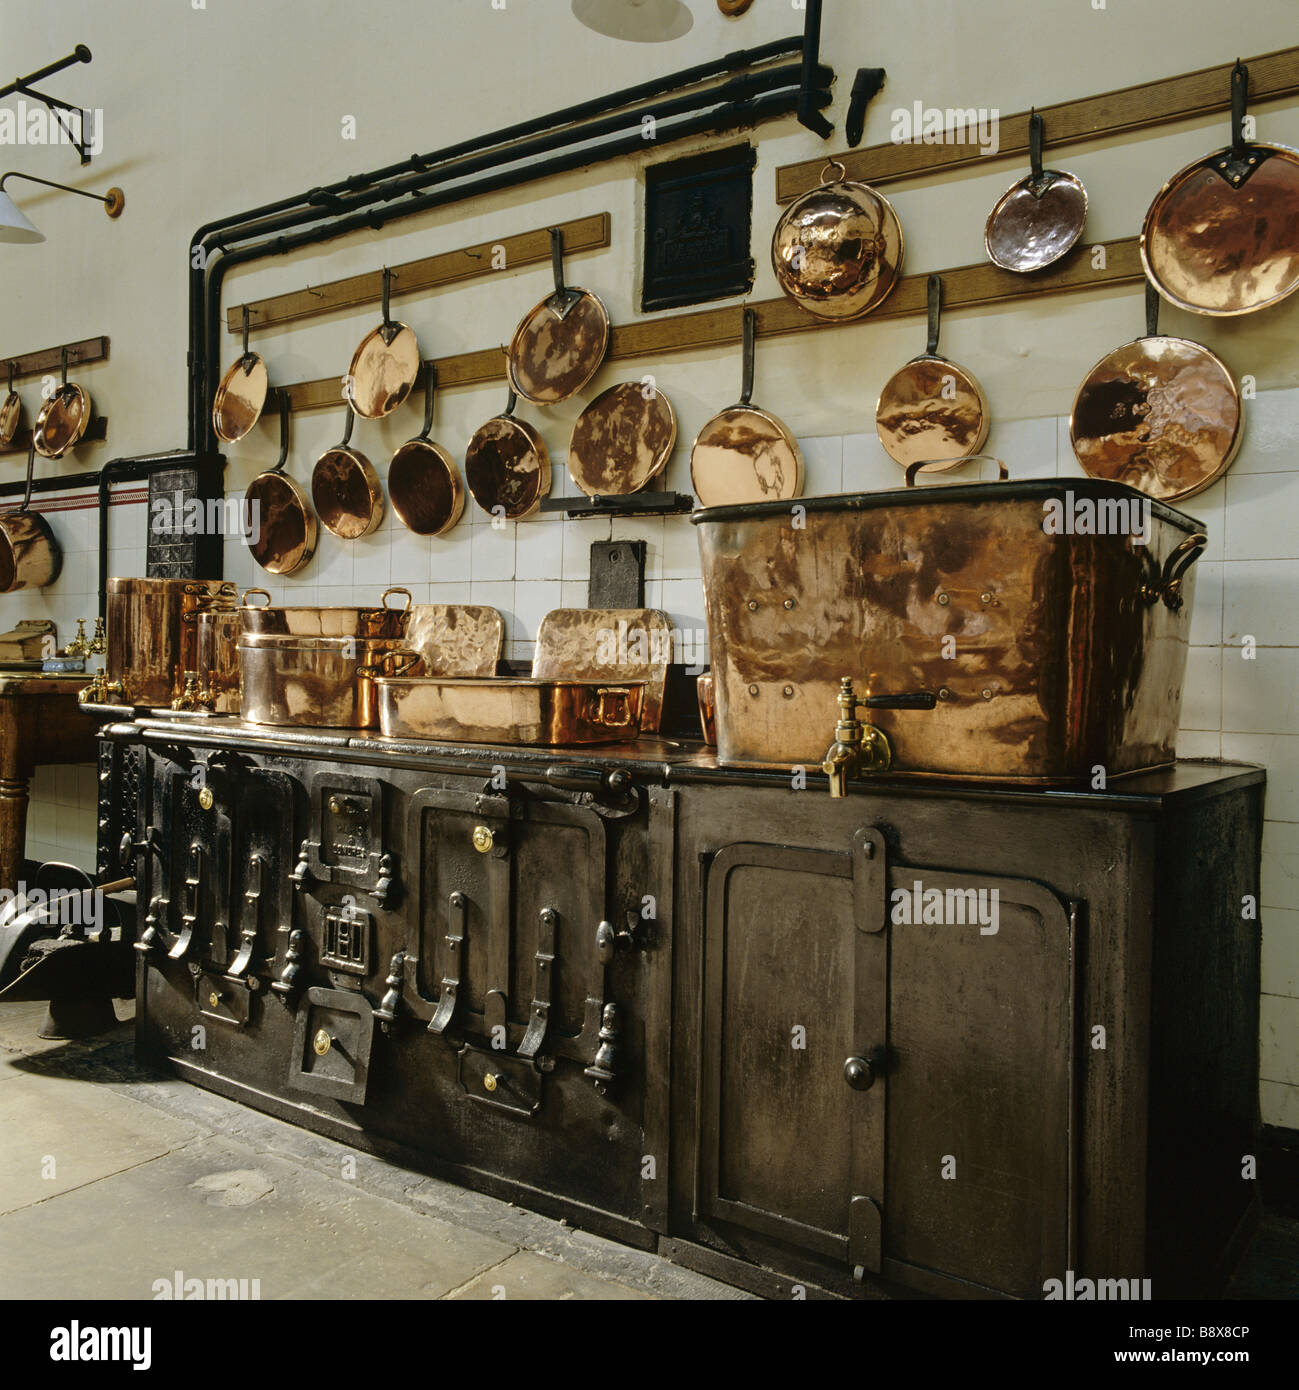 Kitchen Design Hanging Pots And Pans: The Kitchen At Lanhydrock Copper Pots And Pans Hang From